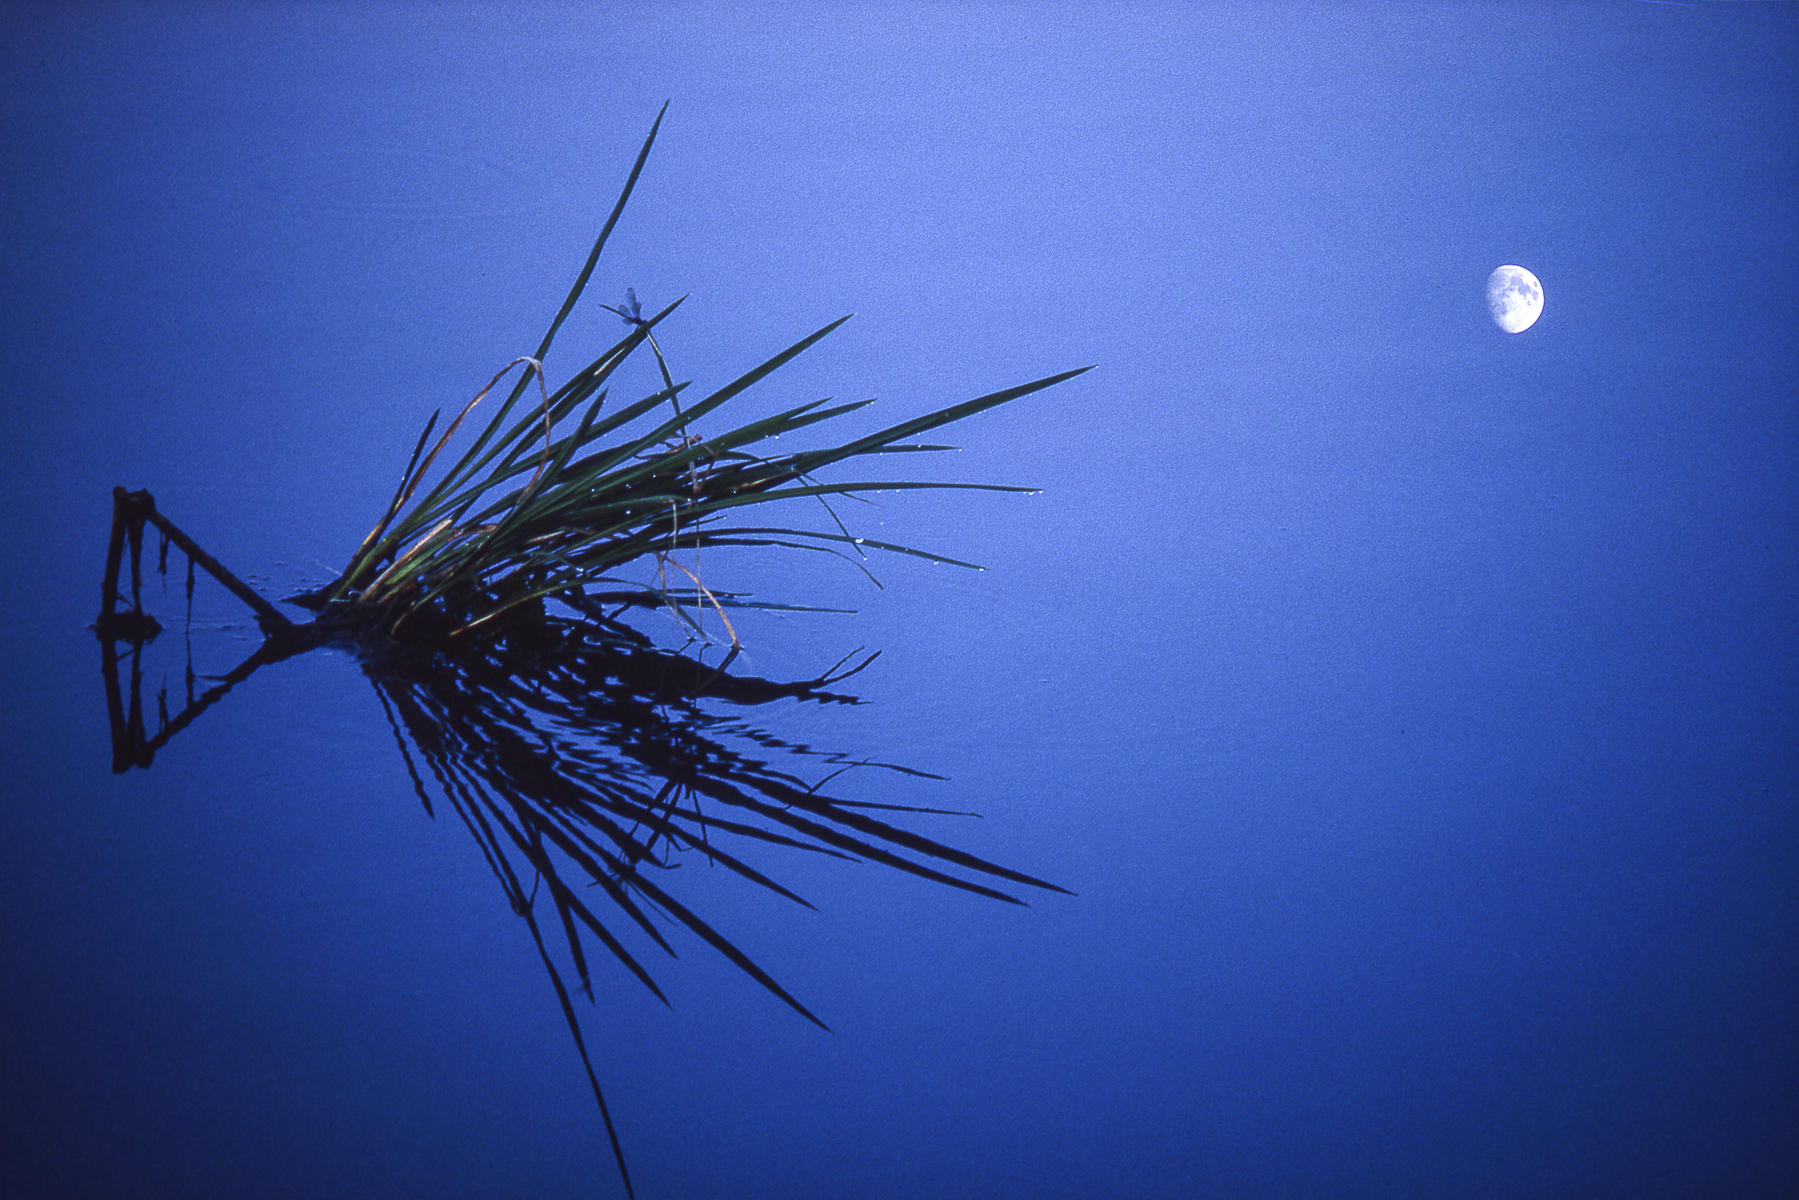 Moon and Dragonfly, Bivens Arm Nature Preserve, Florida : landscapes : TIMOTHY FLOYD PHOTOGRAPHER, NATURE PHOTOGRAPHY, PHOTO ESSAYS, PHOTOJOURNALISM